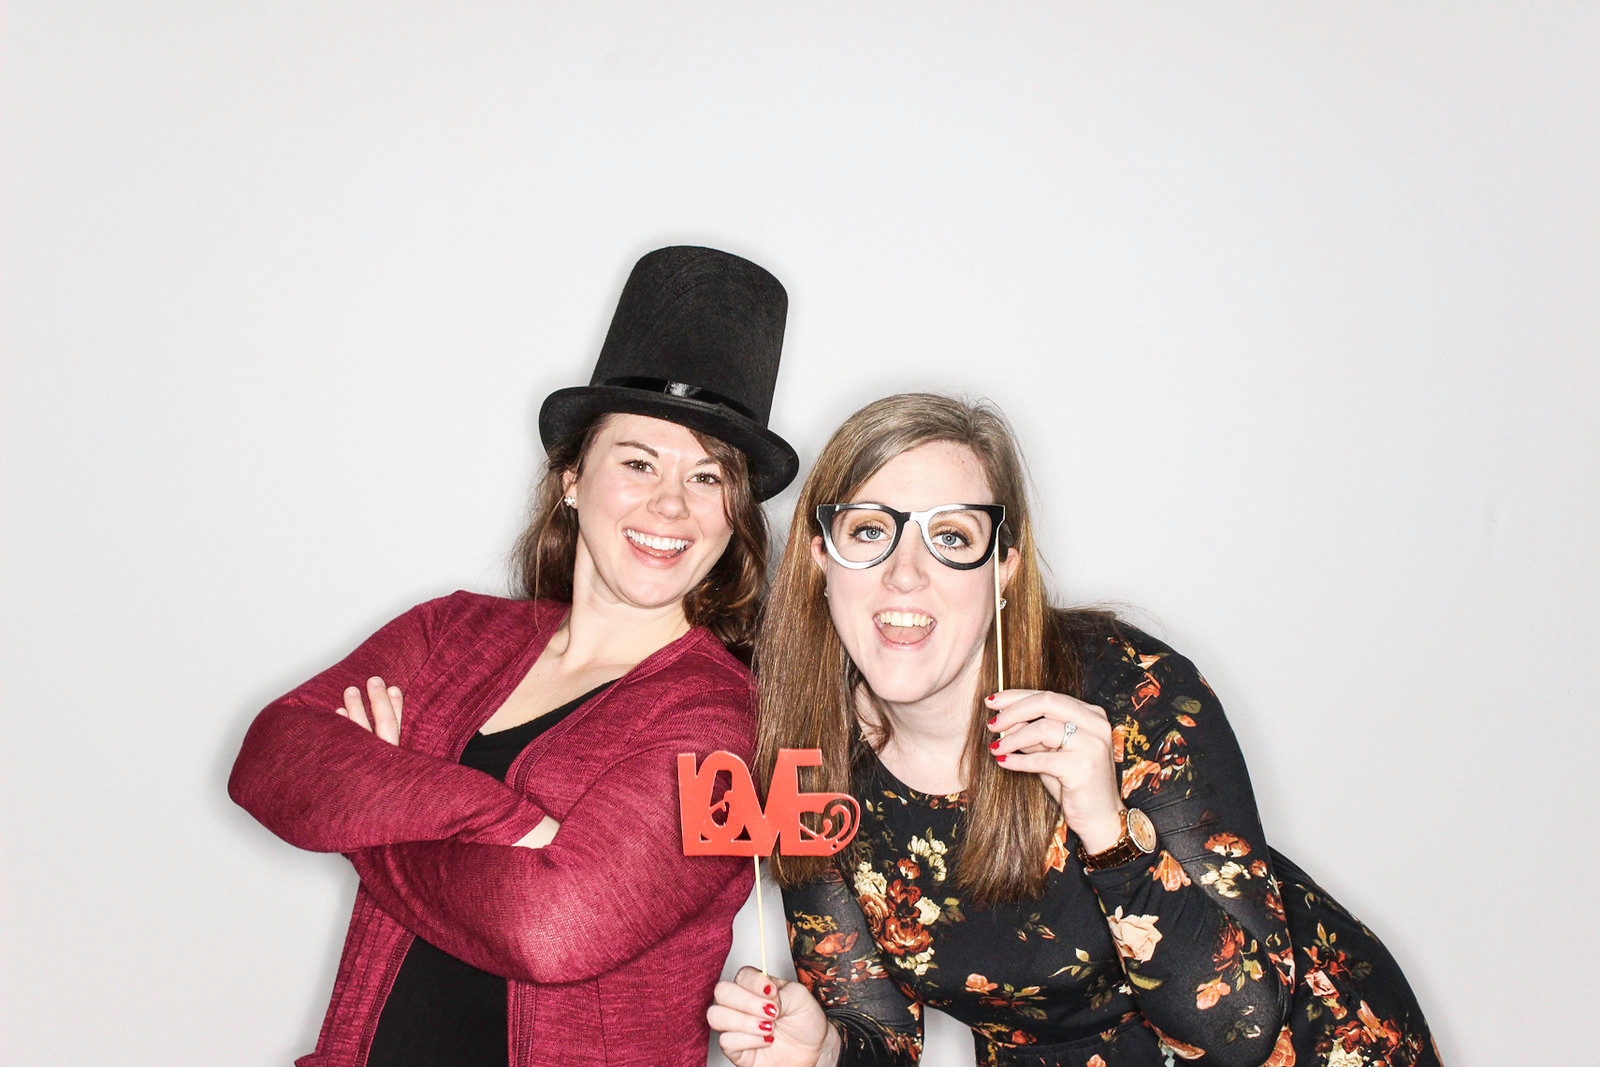 Jessica and Taylor Get Hitched-Salt Lake City Photo Booth Rental-SocialLightPhoto com-9